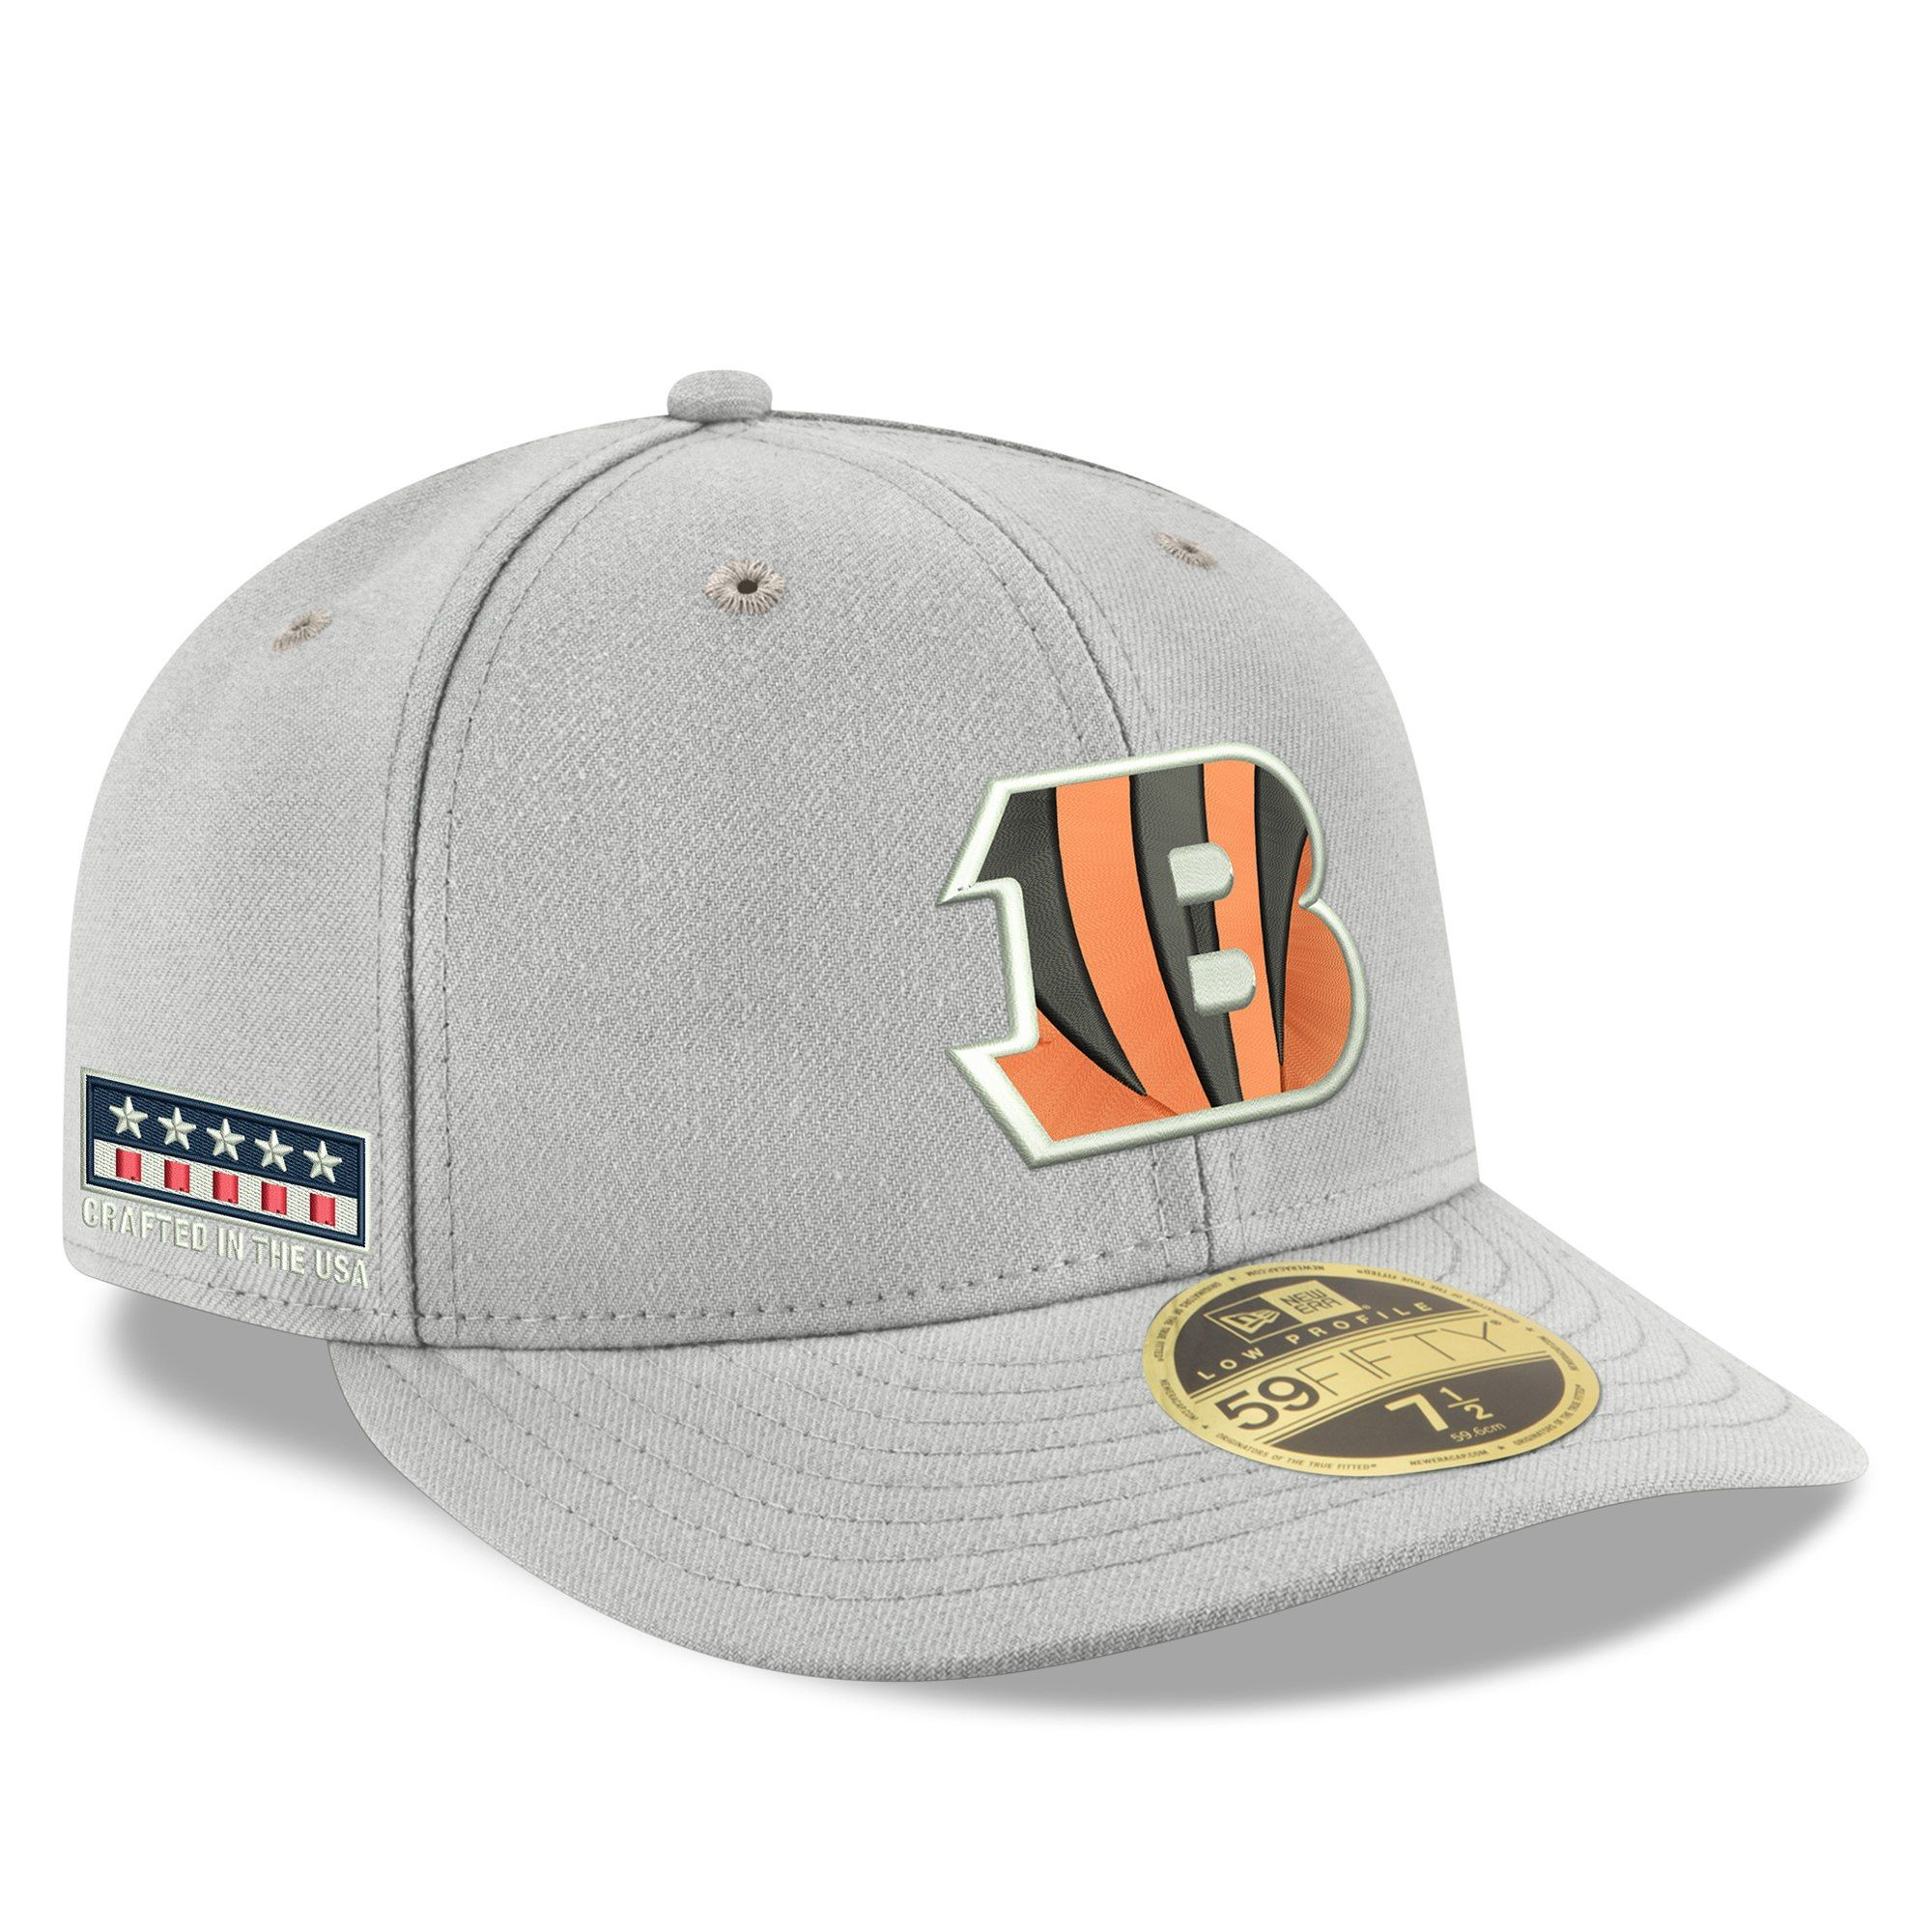 big sale 6902b 58021 Men s Cincinnati Bengals New Era Gray Crafted in the USA Low Profile  59FIFTY Fitted Hat, Your Price   39.99